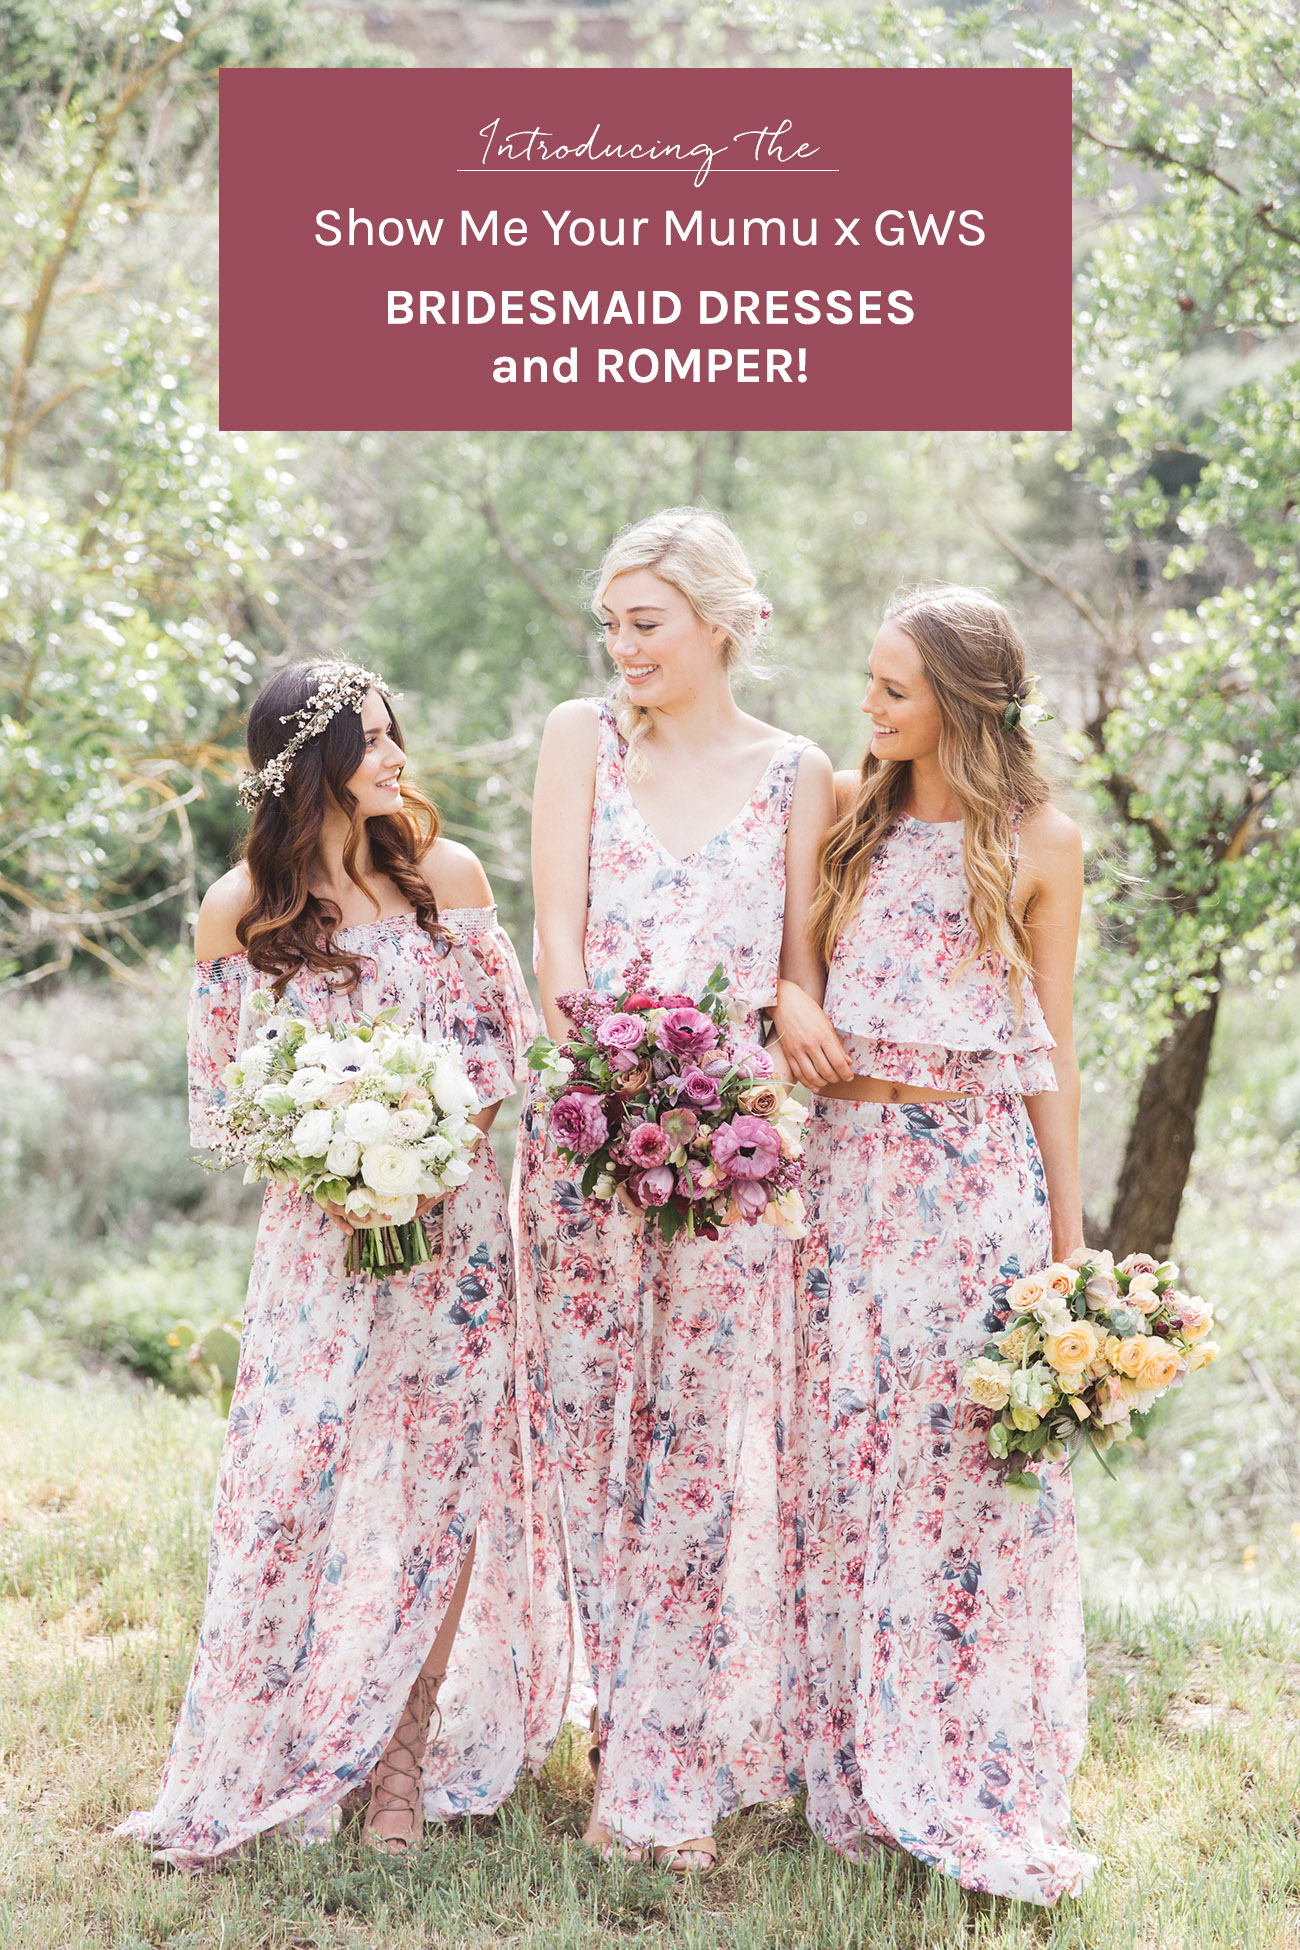 Show Me Your Mumu X GWS Bridesmaid dresses